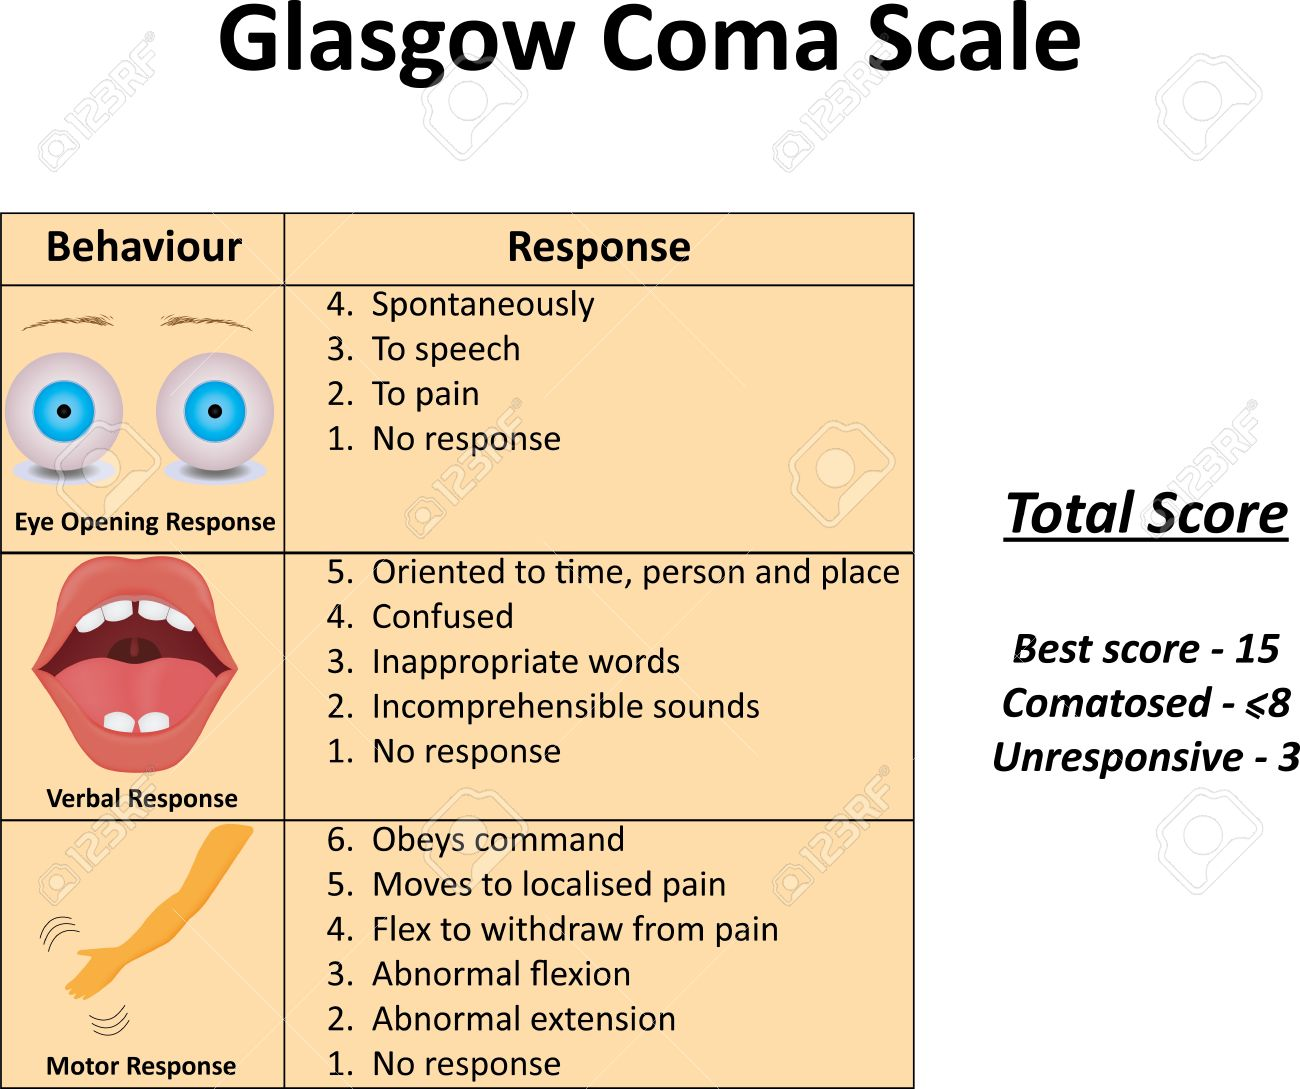 Glasgow Coma Scale Royalty Free Cliparts, Vectors, And Stock ...